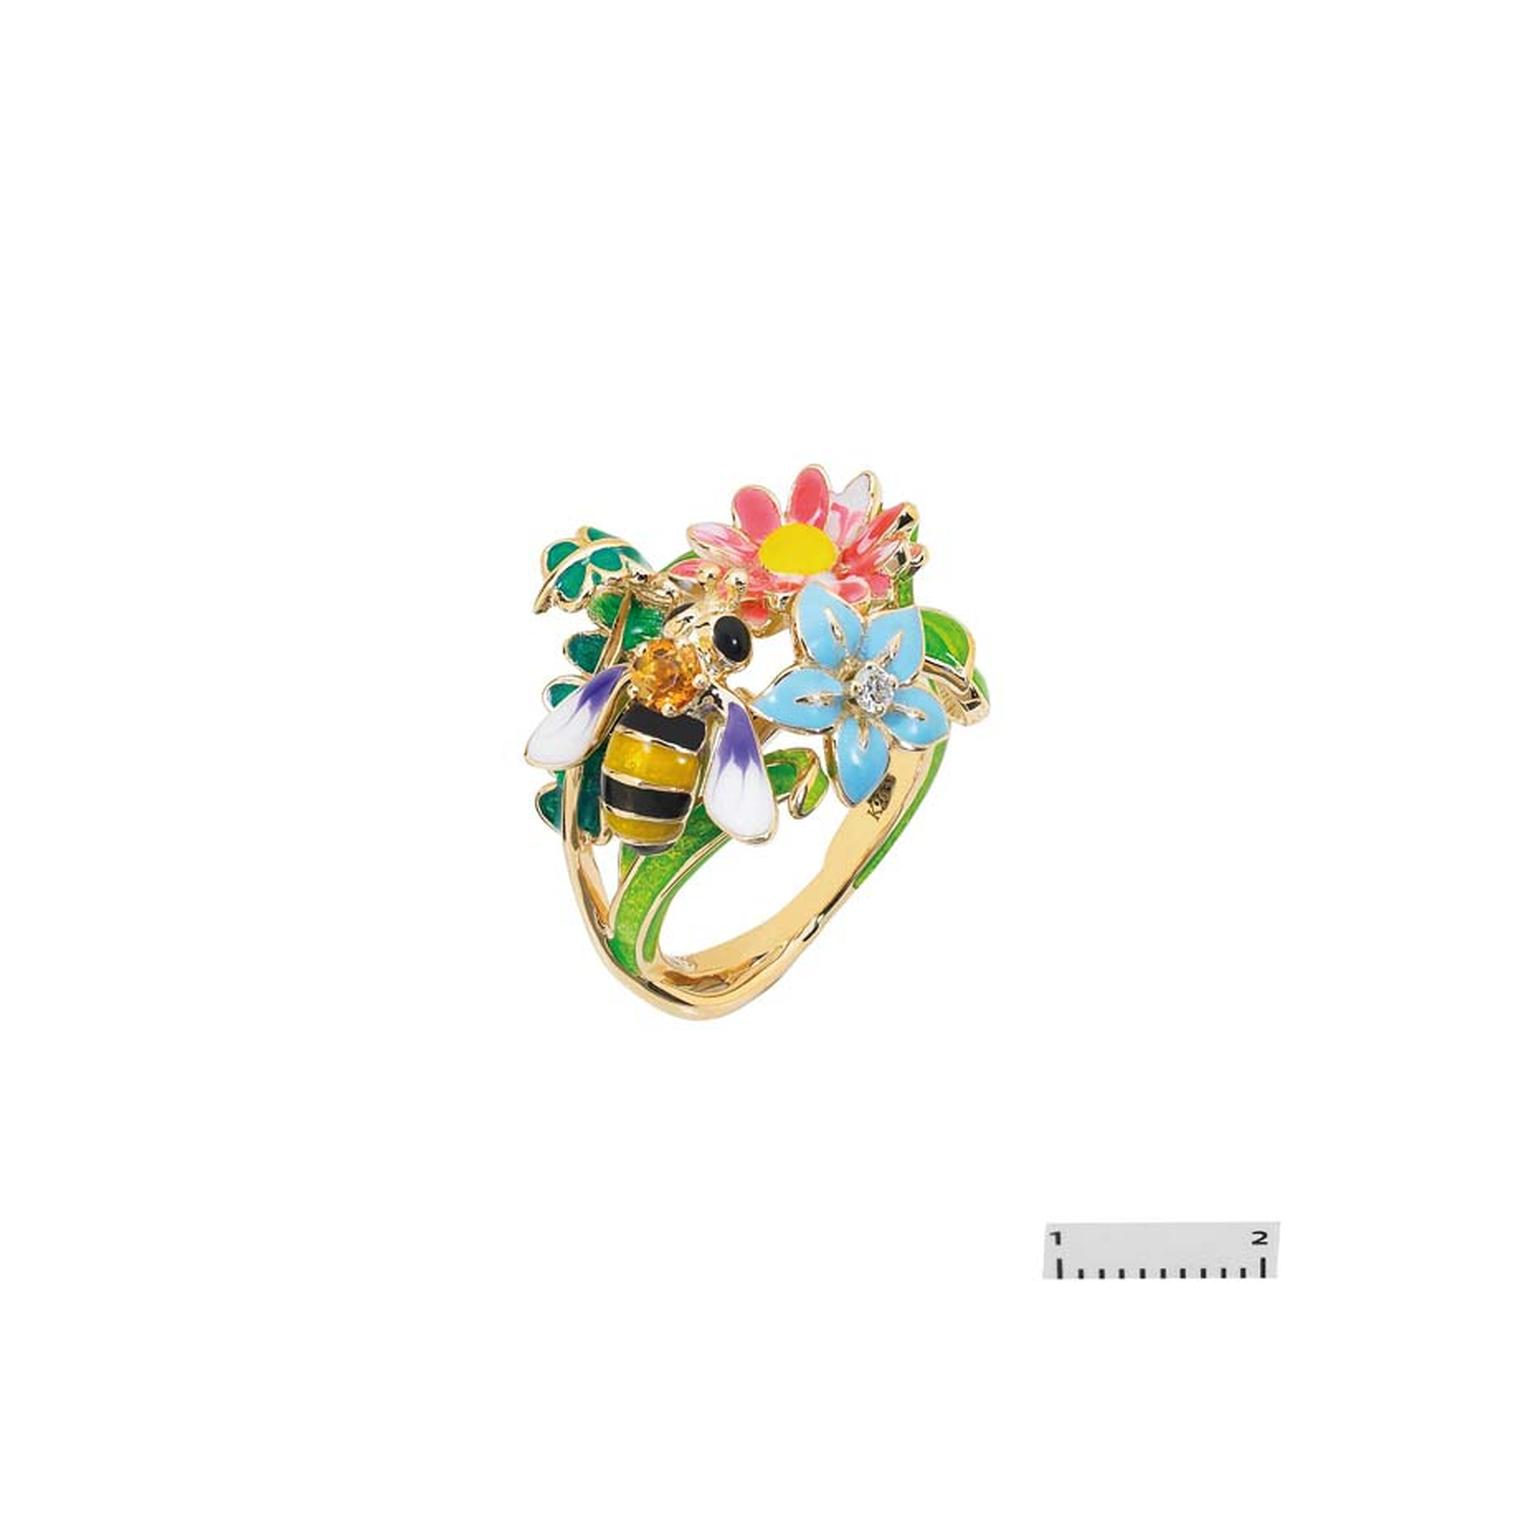 Bees_Dior_coloured ring.jpg